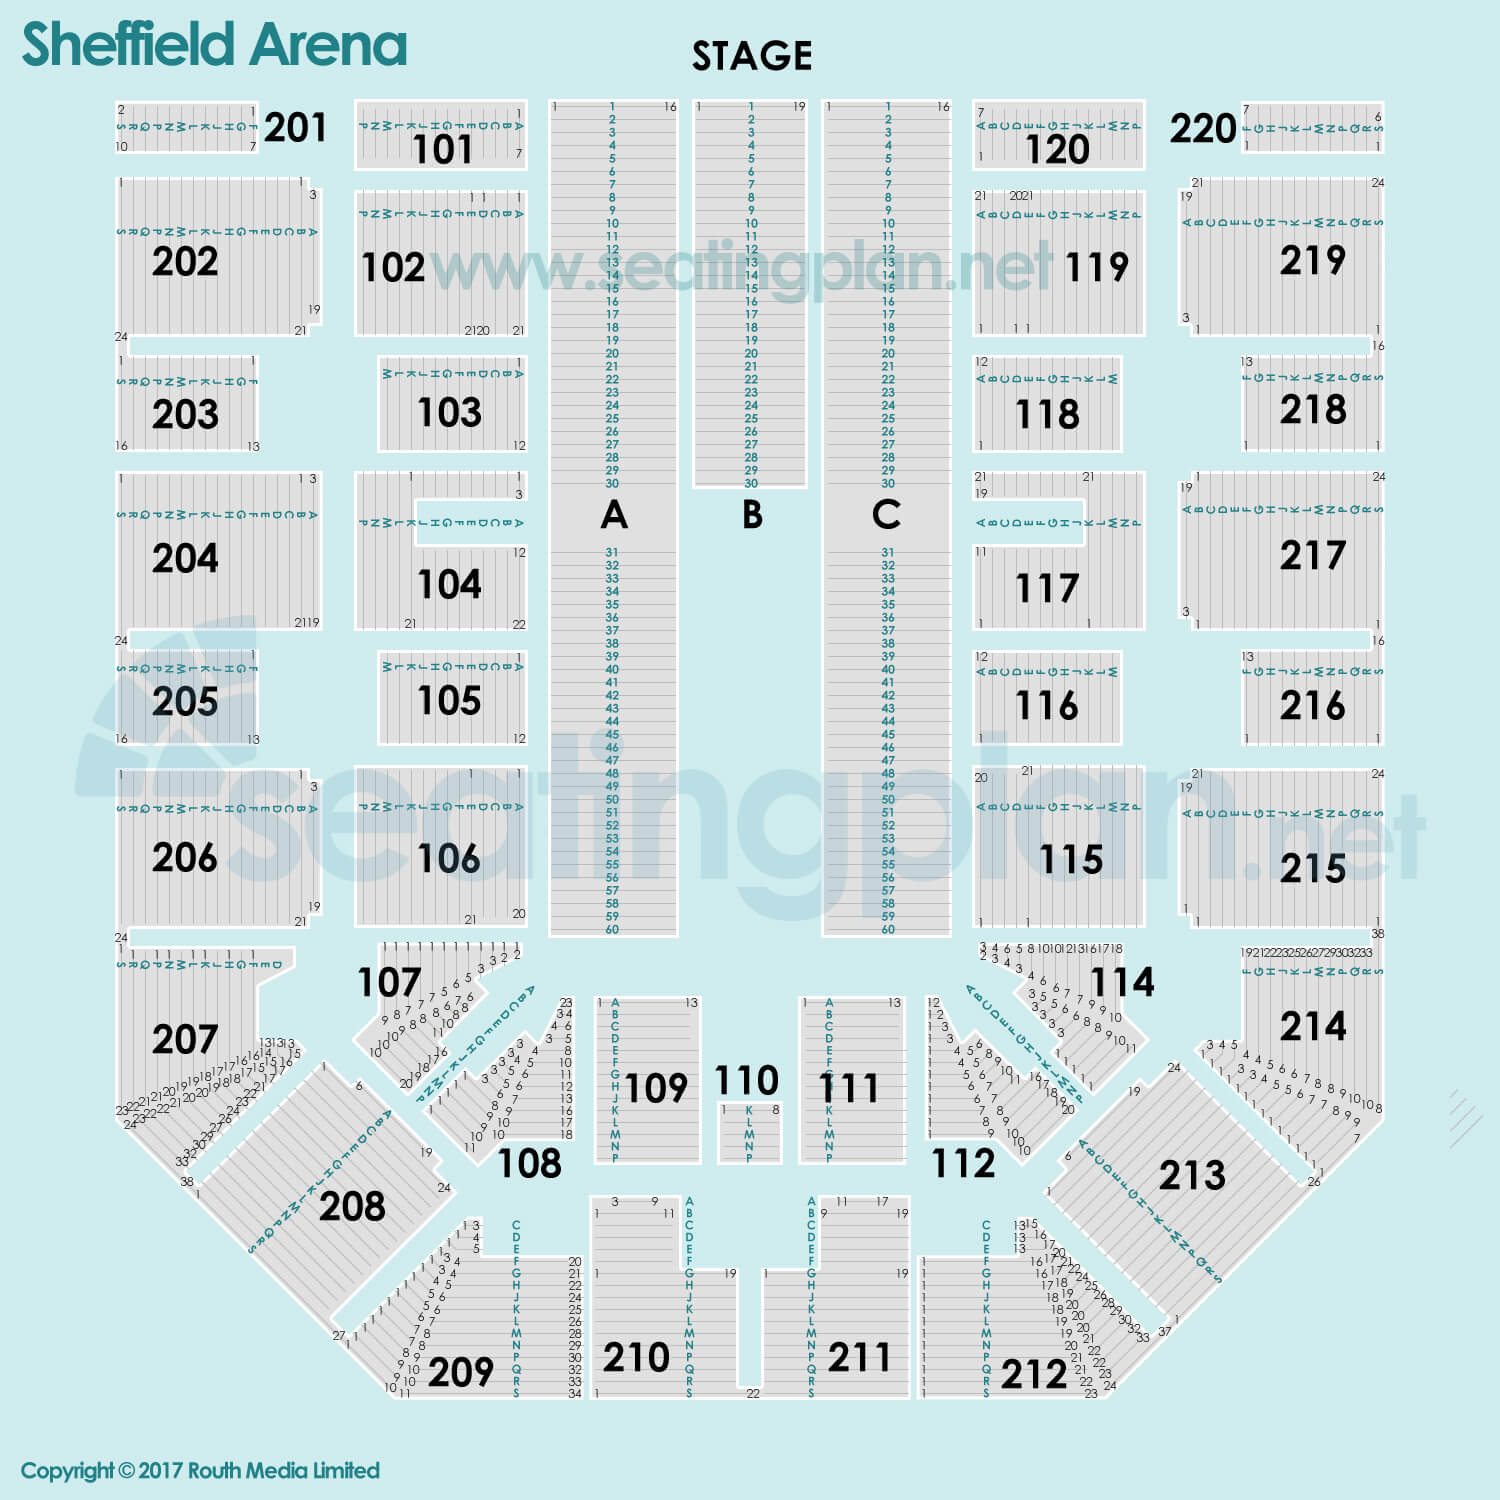 Flydsa Arena Sheffield Arena Detailed Seating Plan